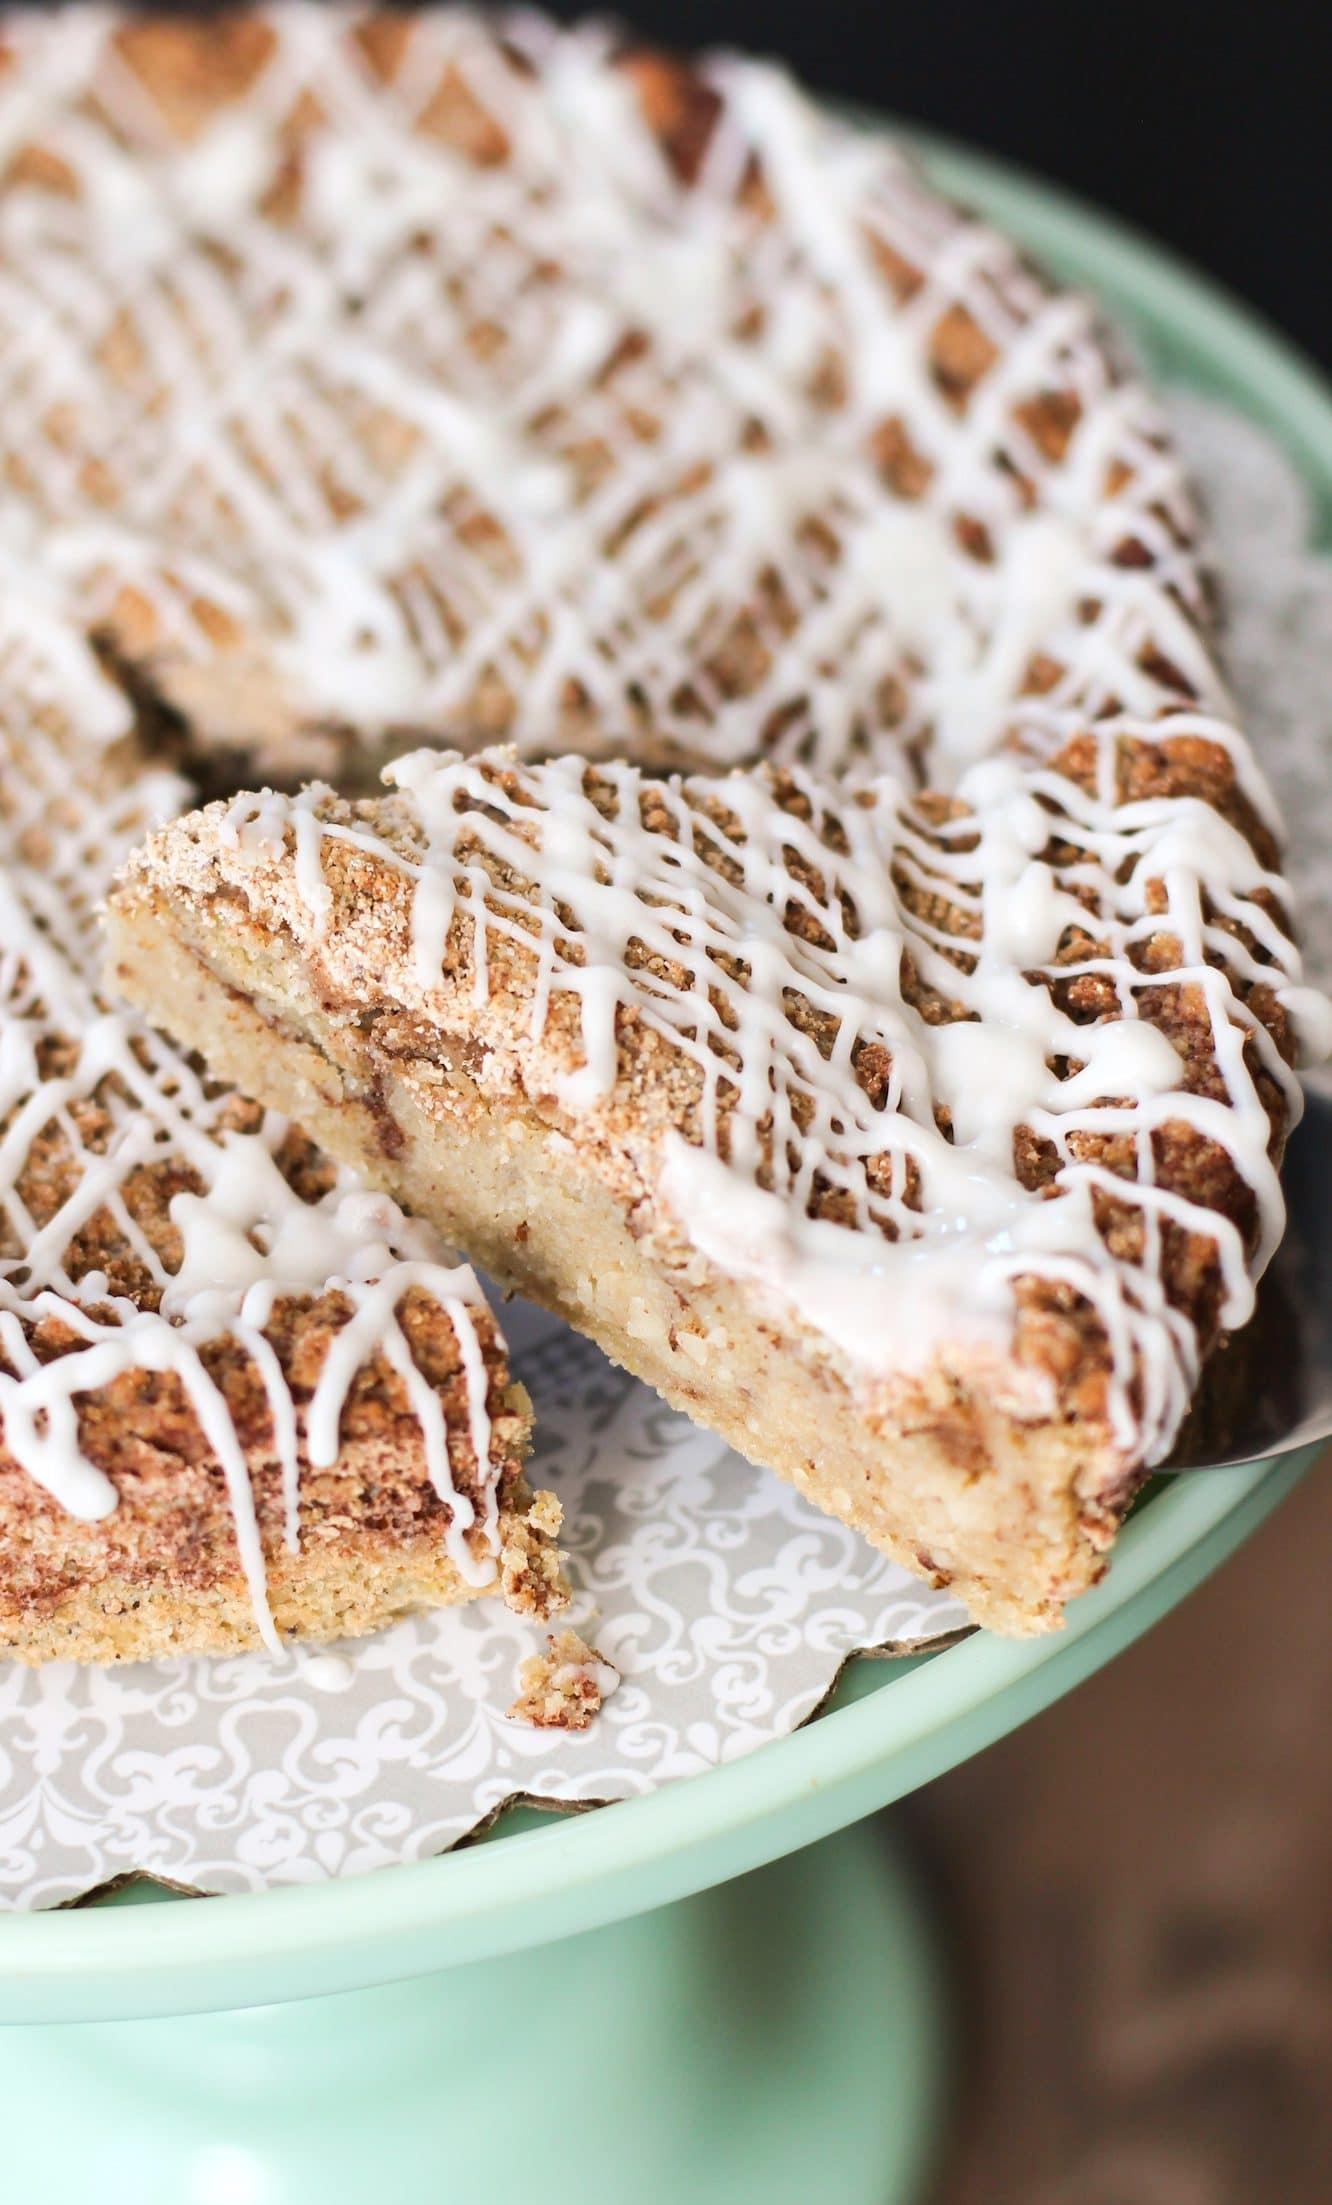 Healthy Coffee Cake (refined sugar free, low fat, high protein, high fiber, gluten free) - Healthy Dessert Recipes at Desserts with Benefits